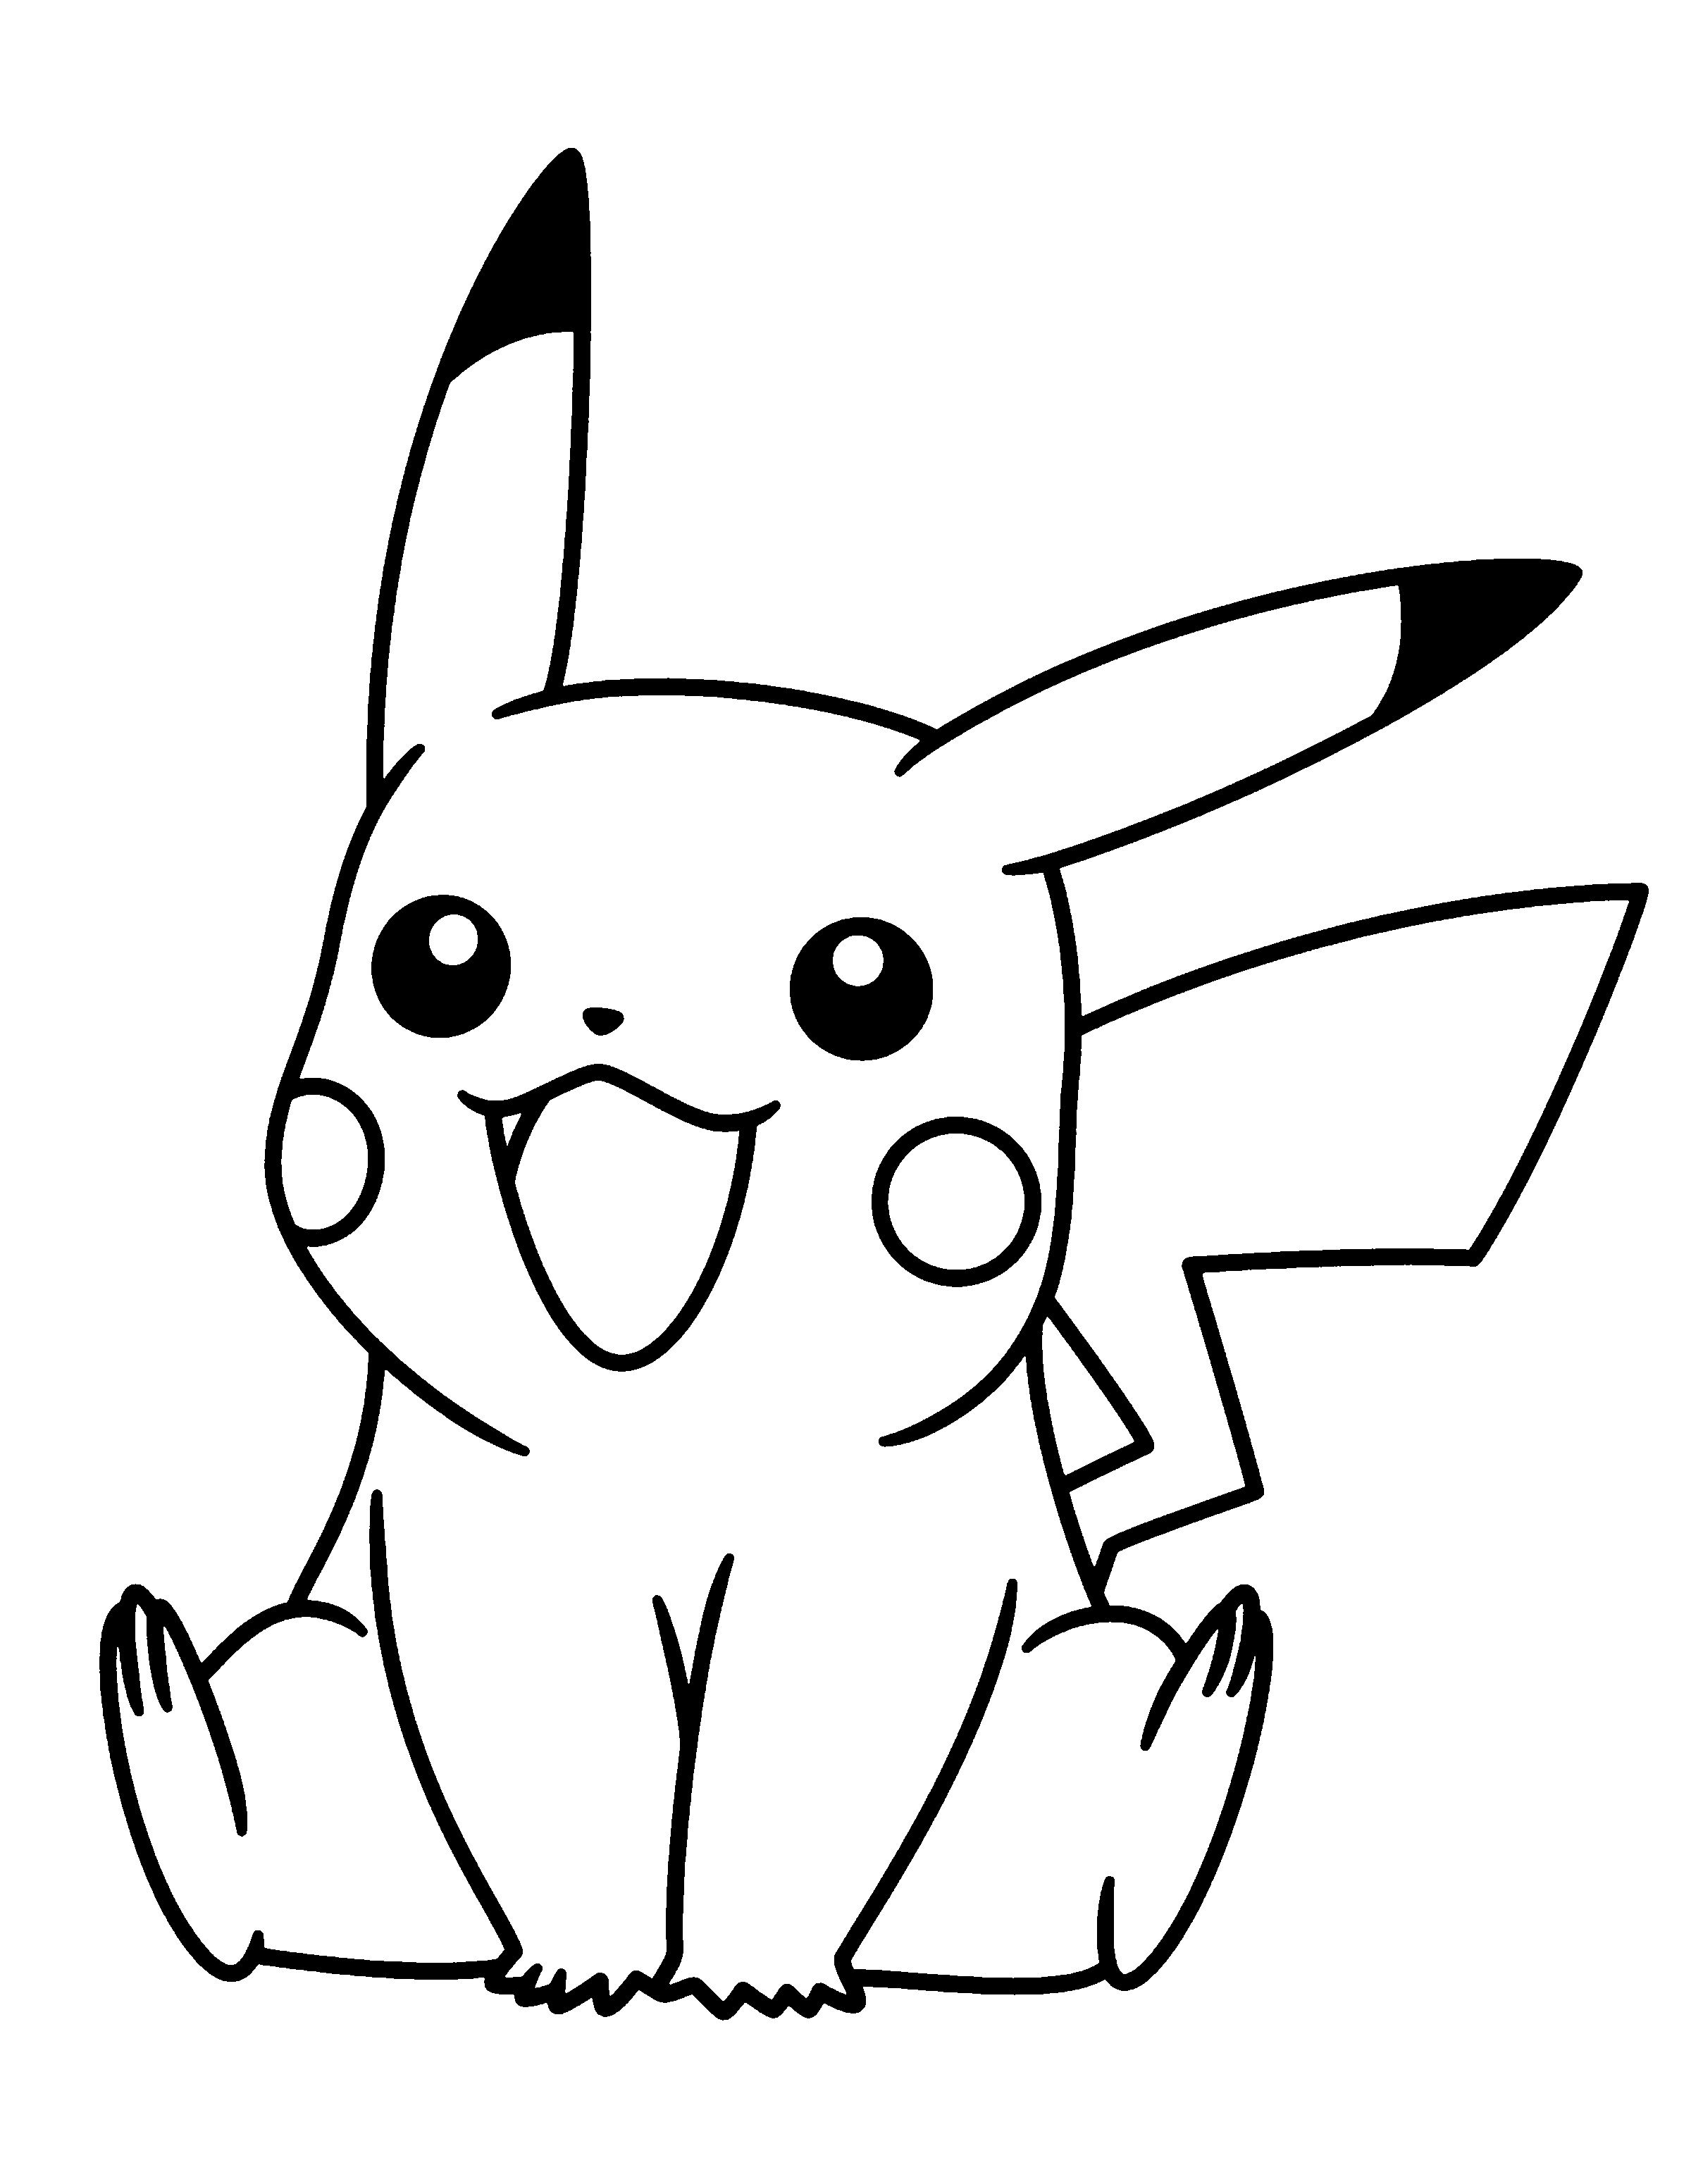 Pikachu clipart coloring page printable Pages coloring vinilos Pikachu Pinterest